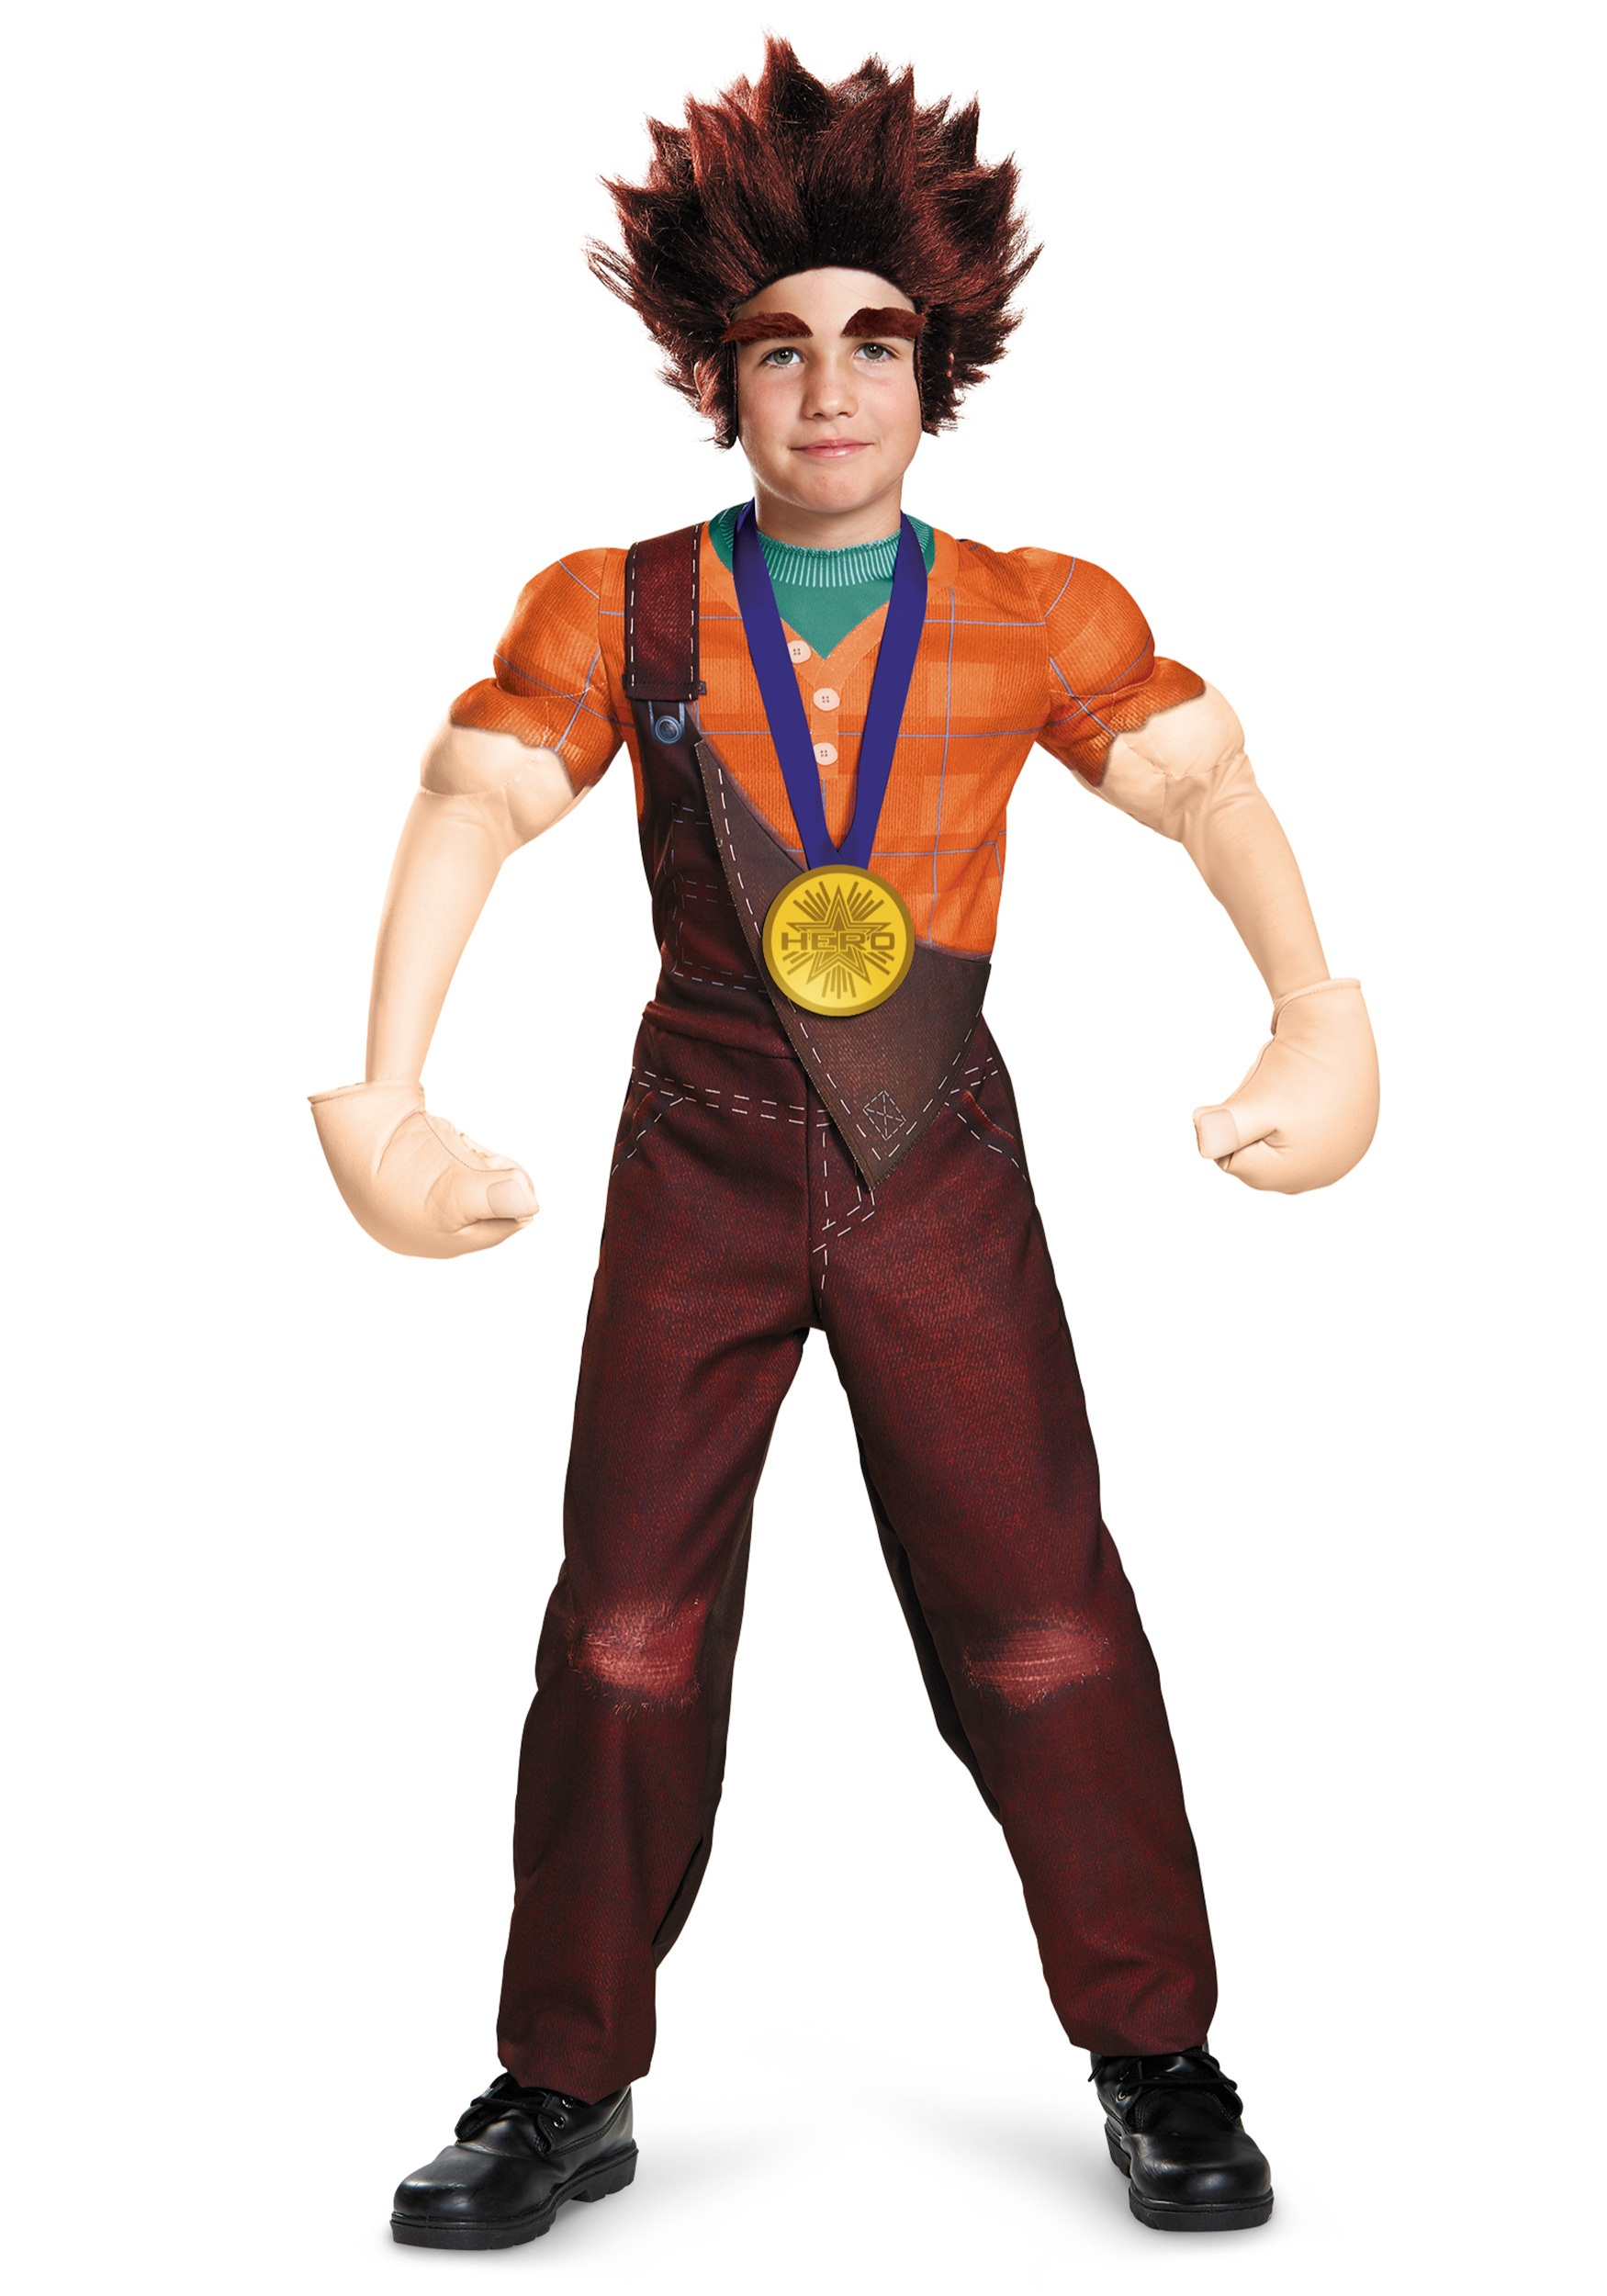 Child Deluxe Wreck It Ralph Costume  sc 1 st  Halloween Costumes & Disney Costumes For Kids - HalloweenCostumes.com